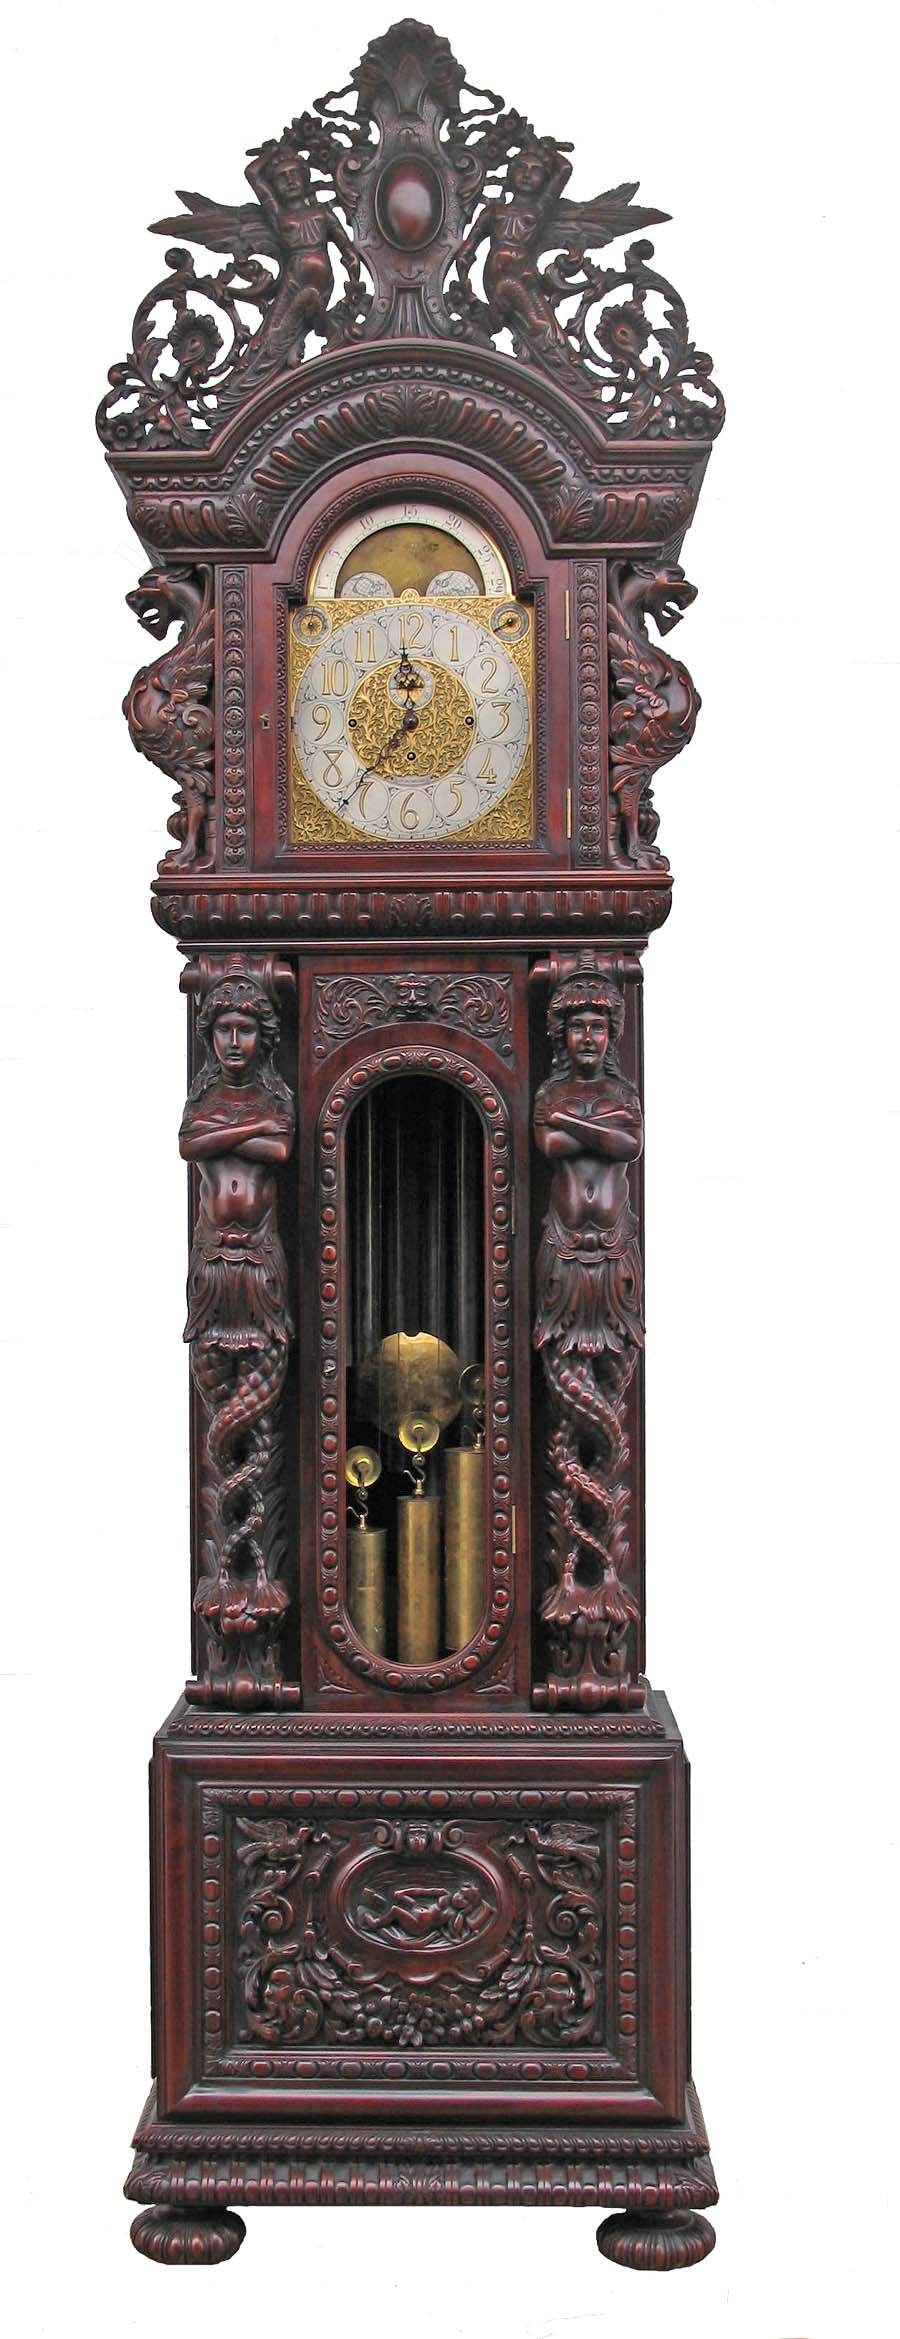 ANTIQUE GRANDFATHER CLOCK CARE AND MAINTENANCE